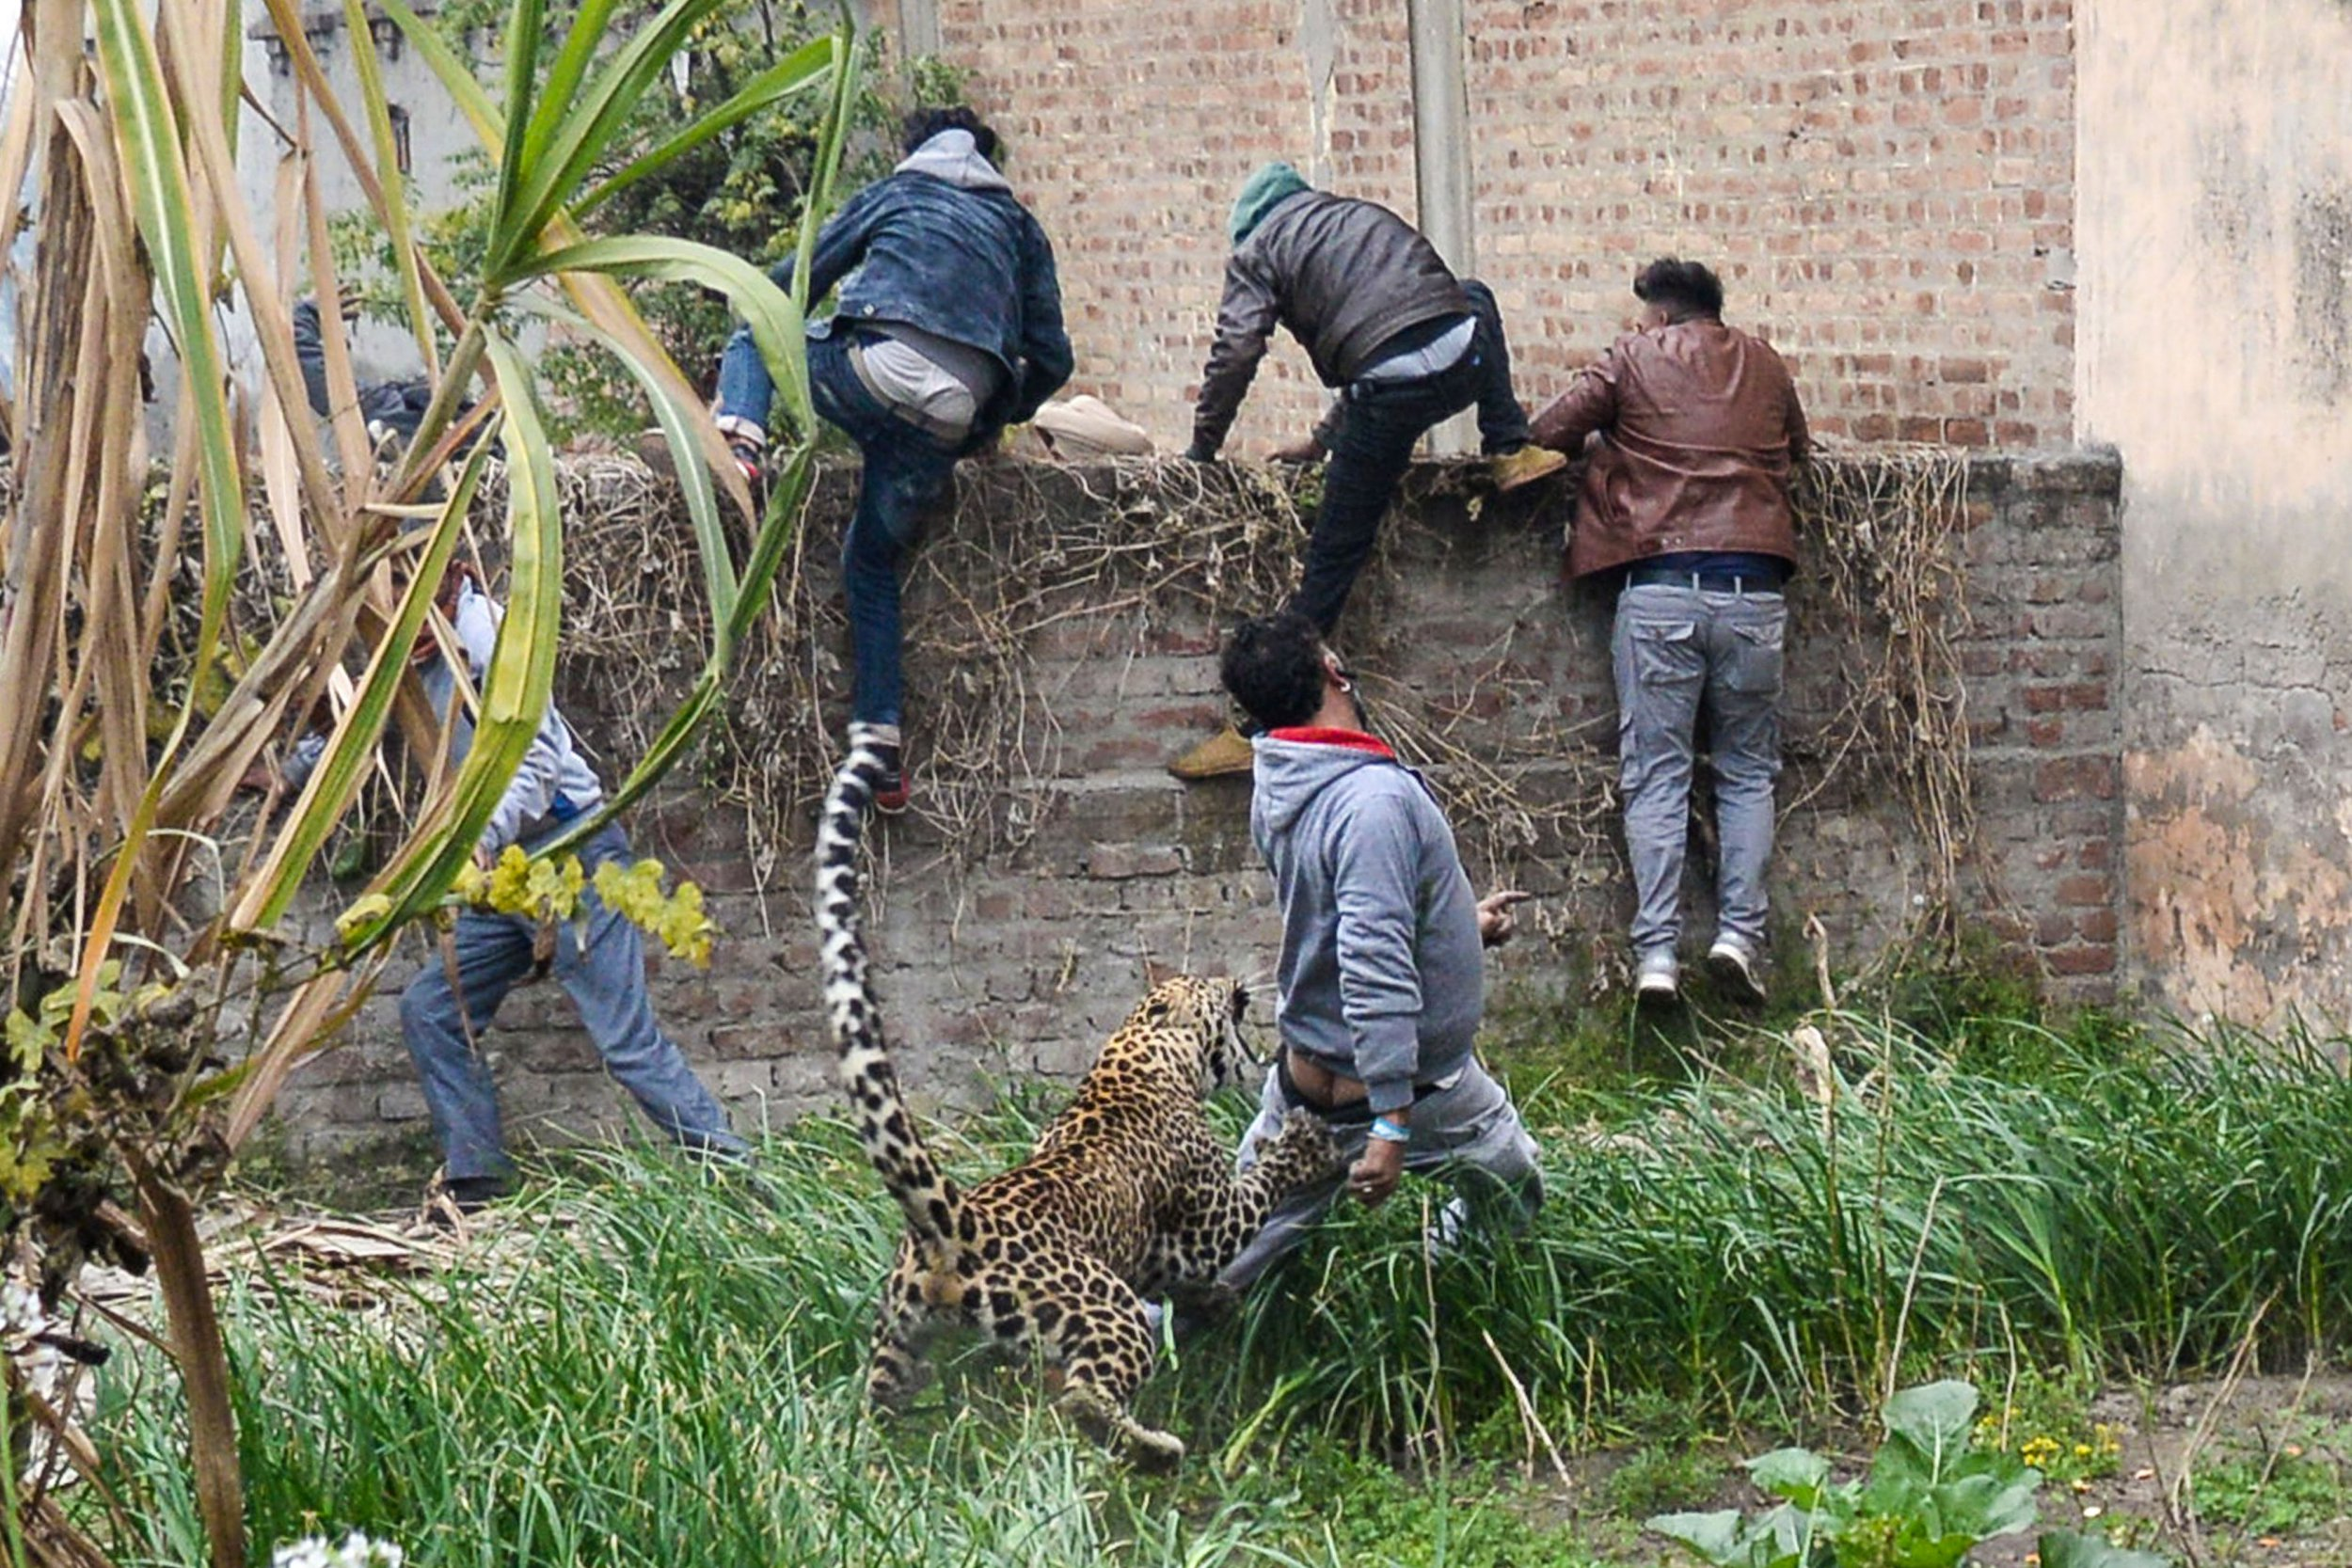 A leopard attacks an Indian man as others climb a wall to get away from the animal in Lamba Pind area in Jalandhar on January 31, 2019. - After a leopard was spotted in a house in Lamba Pind area of Jalandhar city, subsequent attempts to capture it led to the animal attacking at least six people, though none was injured seriously, local media said. (Photo by SHAMMI MEHRA / AFP)SHAMMI MEHRA/AFP/Getty Images